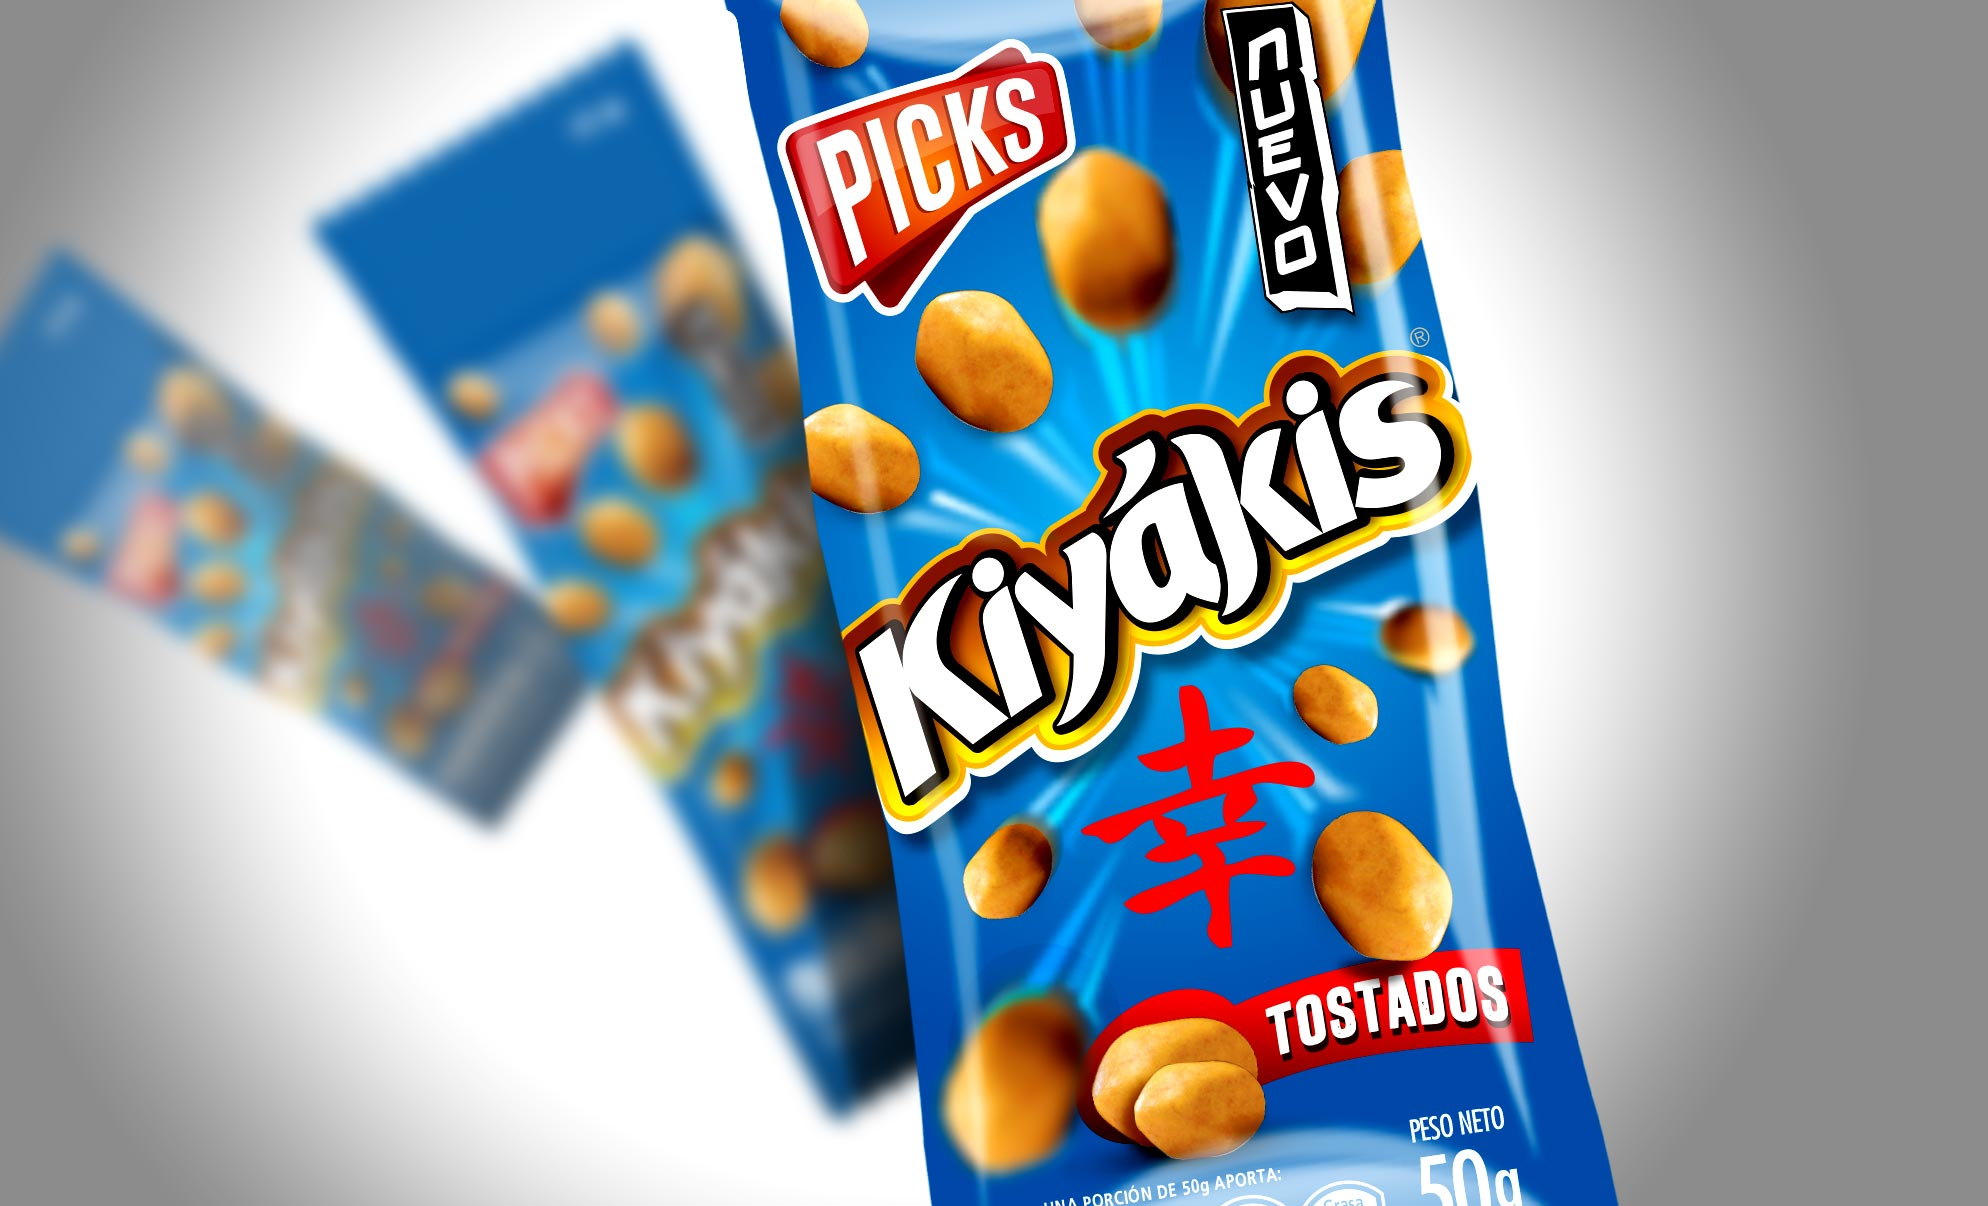 Kiyakis Peanuts Packaging